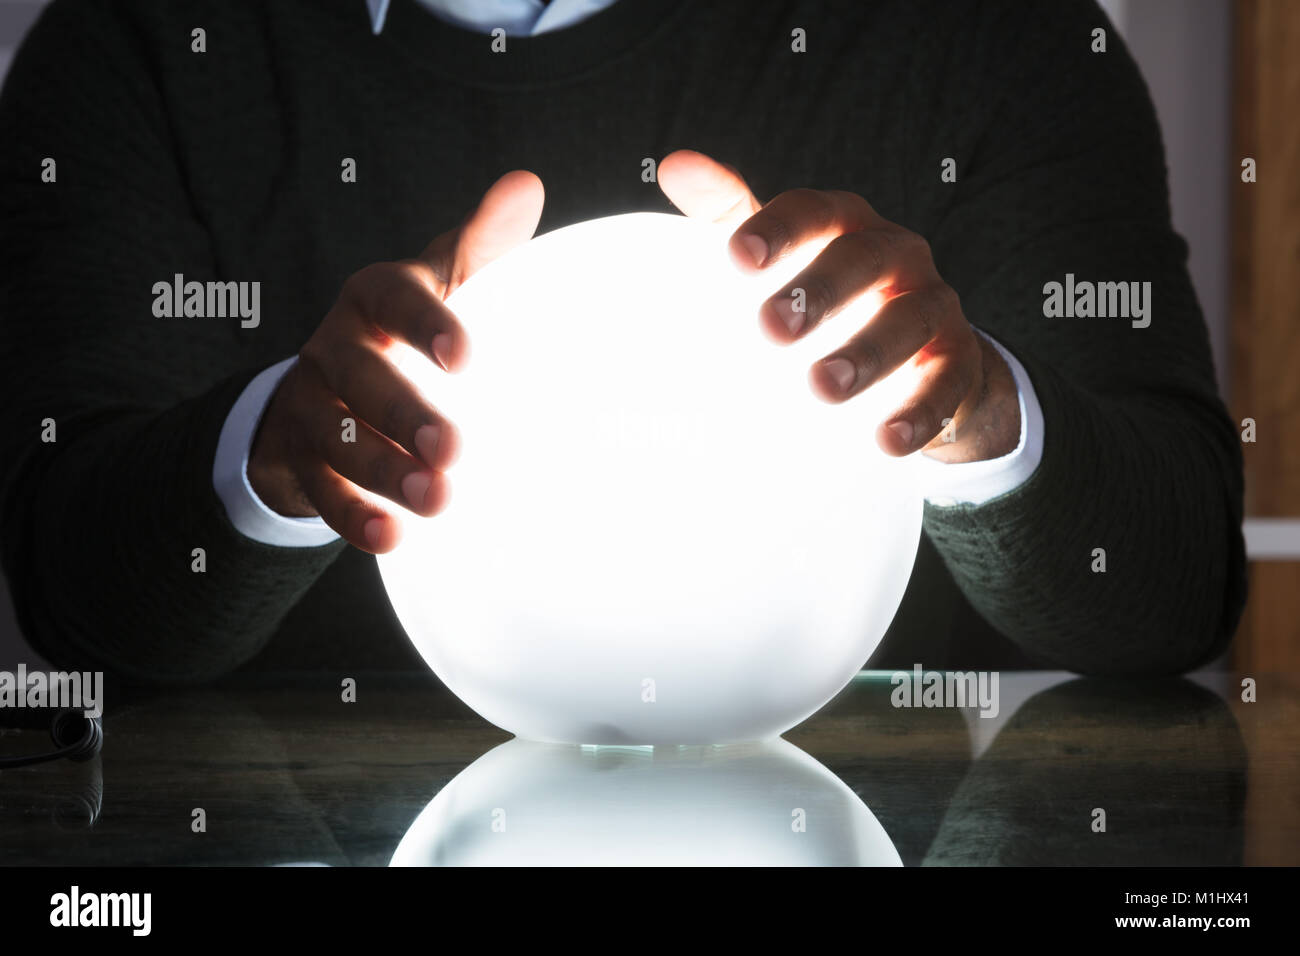 Close-up Of Businessman Hands On Crystal Ball On Desk In Office - Stock Image